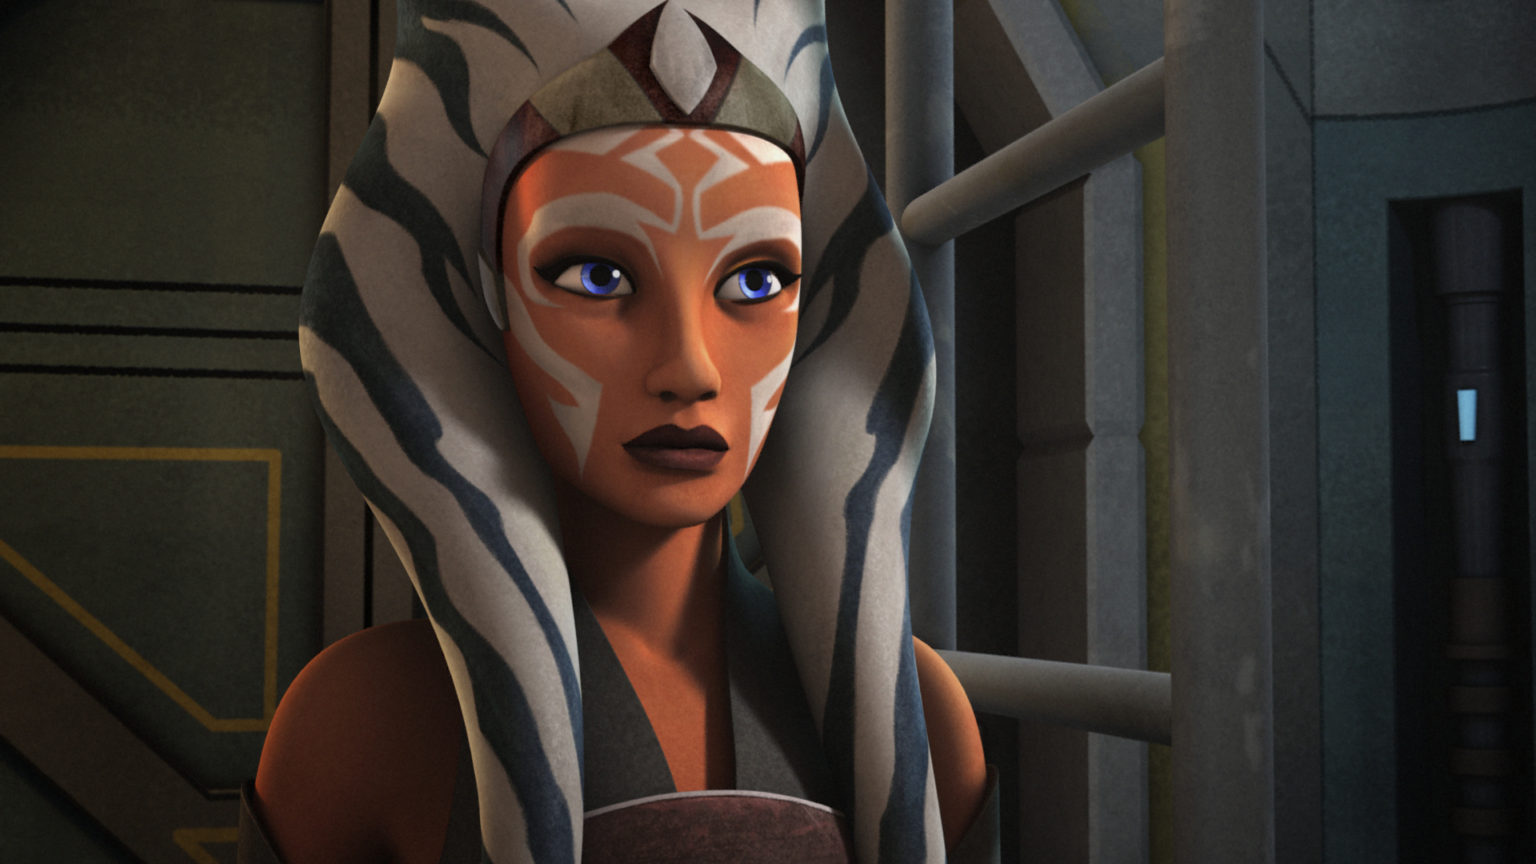 Star Wars Rebels - Ahsoka Tano